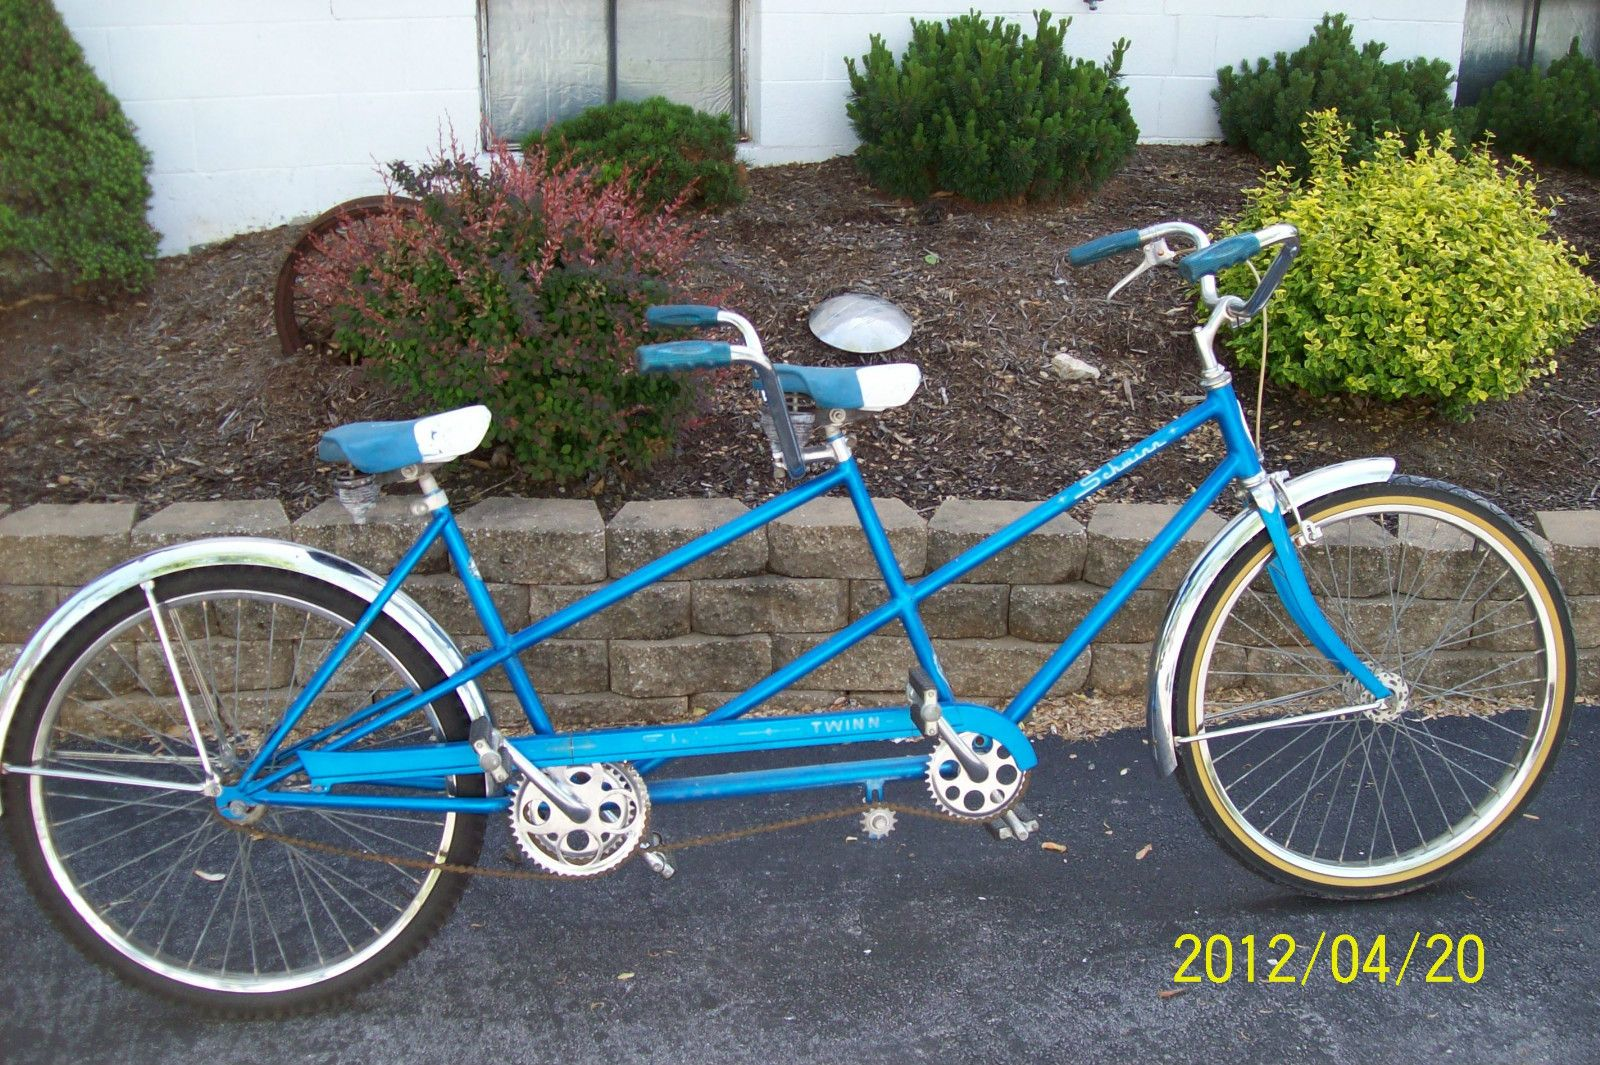 7fee23b7d50 Details about ORIGINAL VINTAGE SCHWINN TWIN TANDEM BLUE BICYCLE BIKE ...